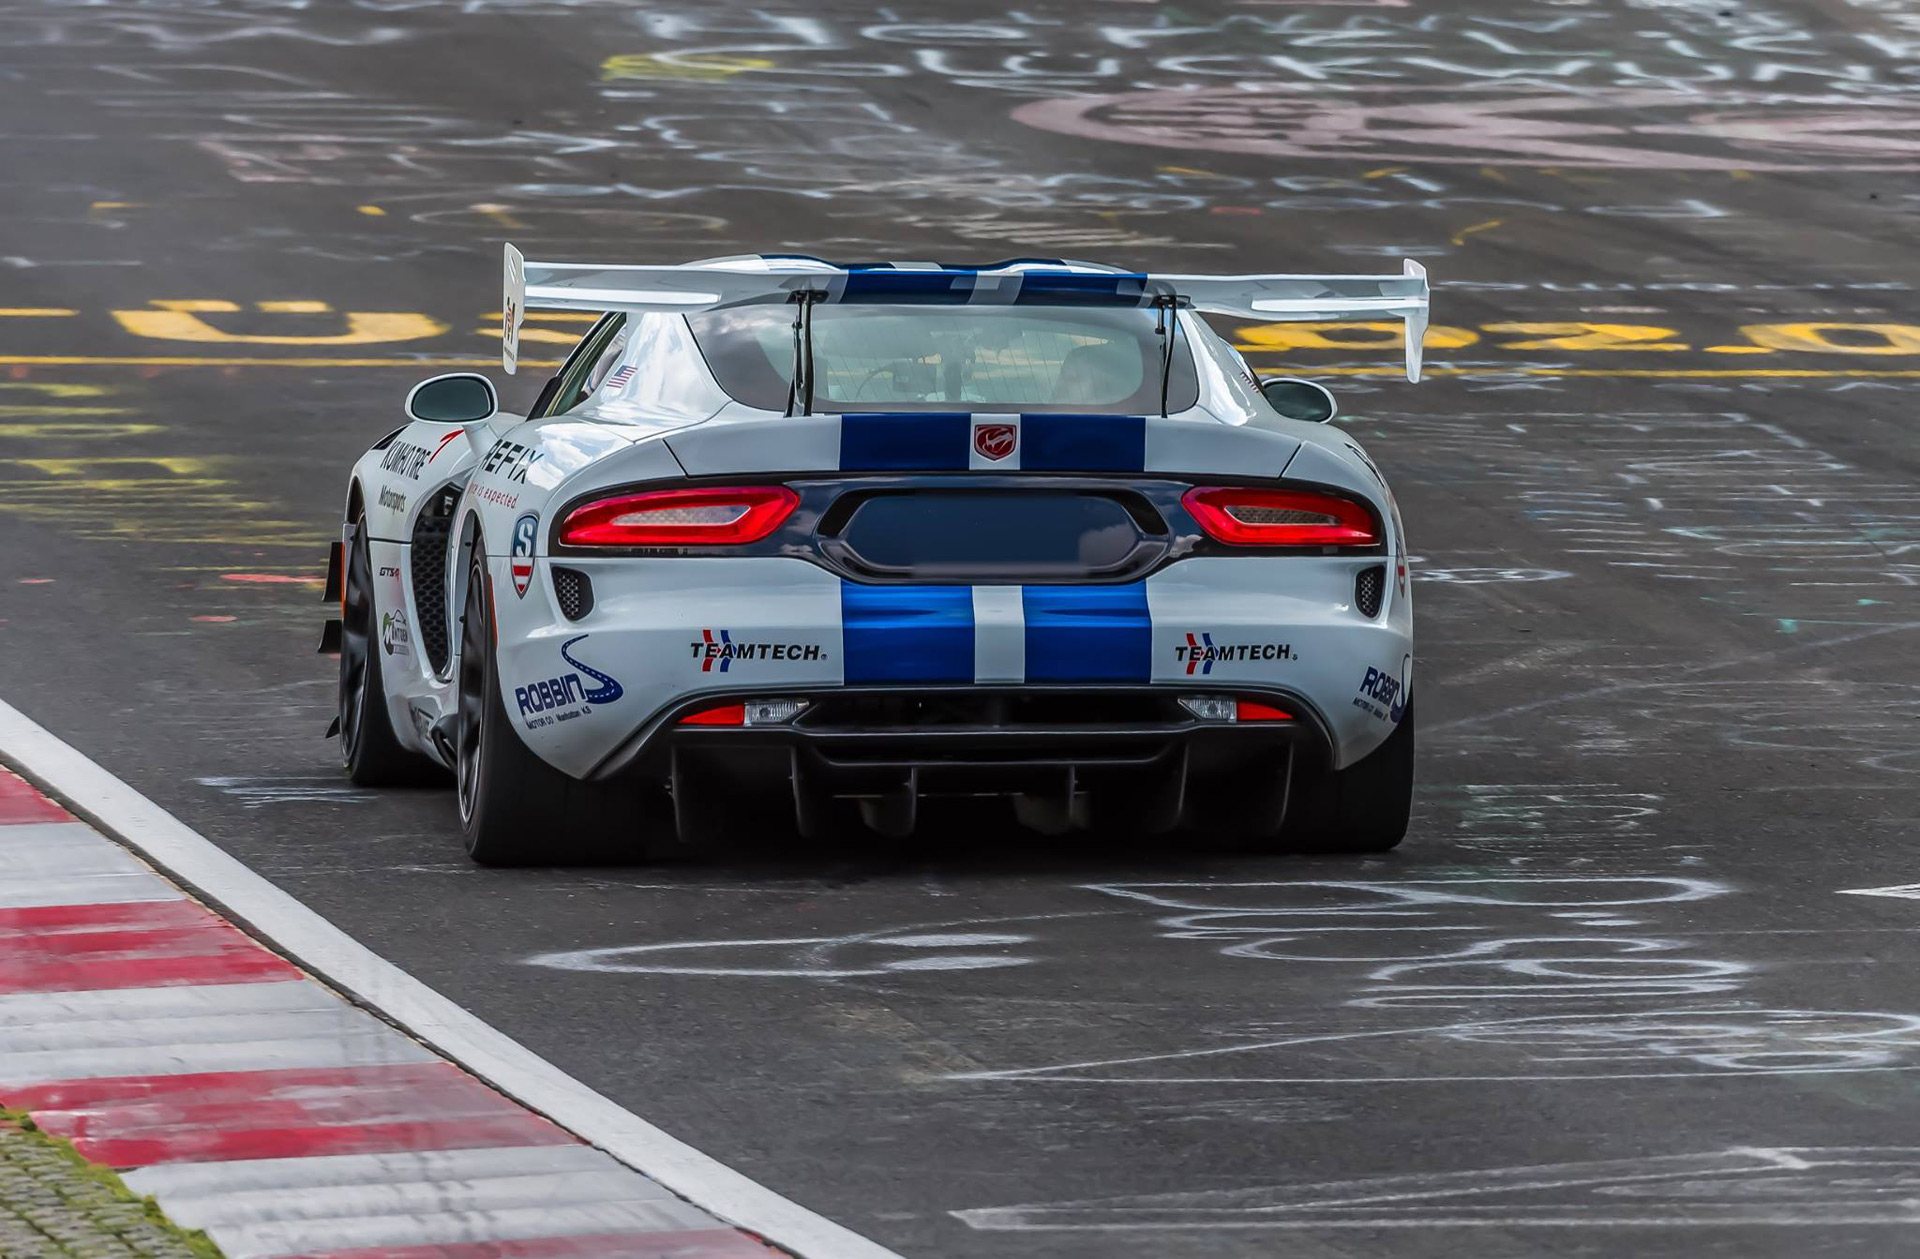 The Dodge Viper Acr Just Ran The Ring In An Unofficial 70345